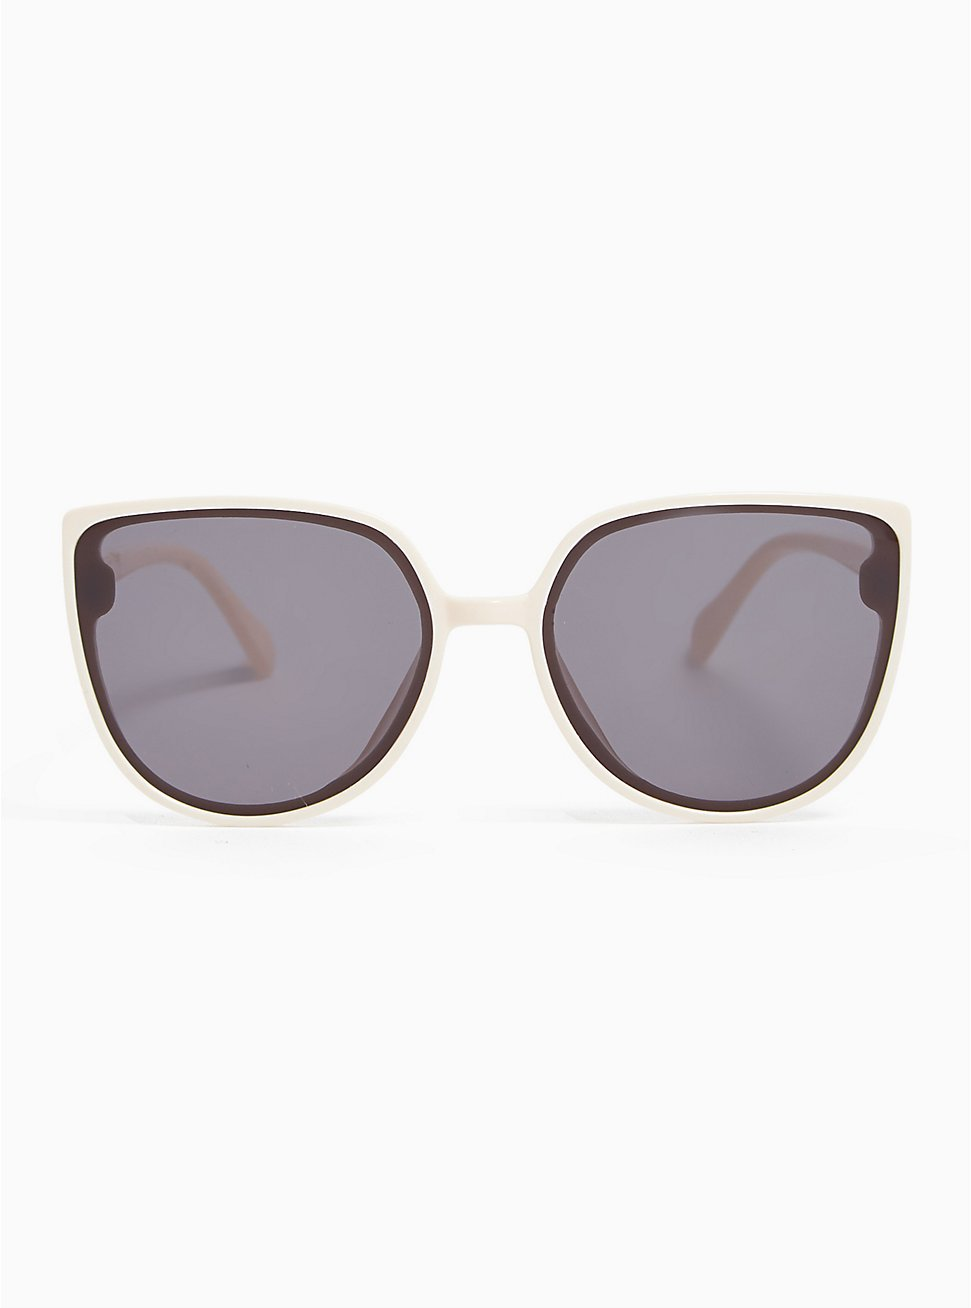 White Cat Eye Sunglasses, , hi-res